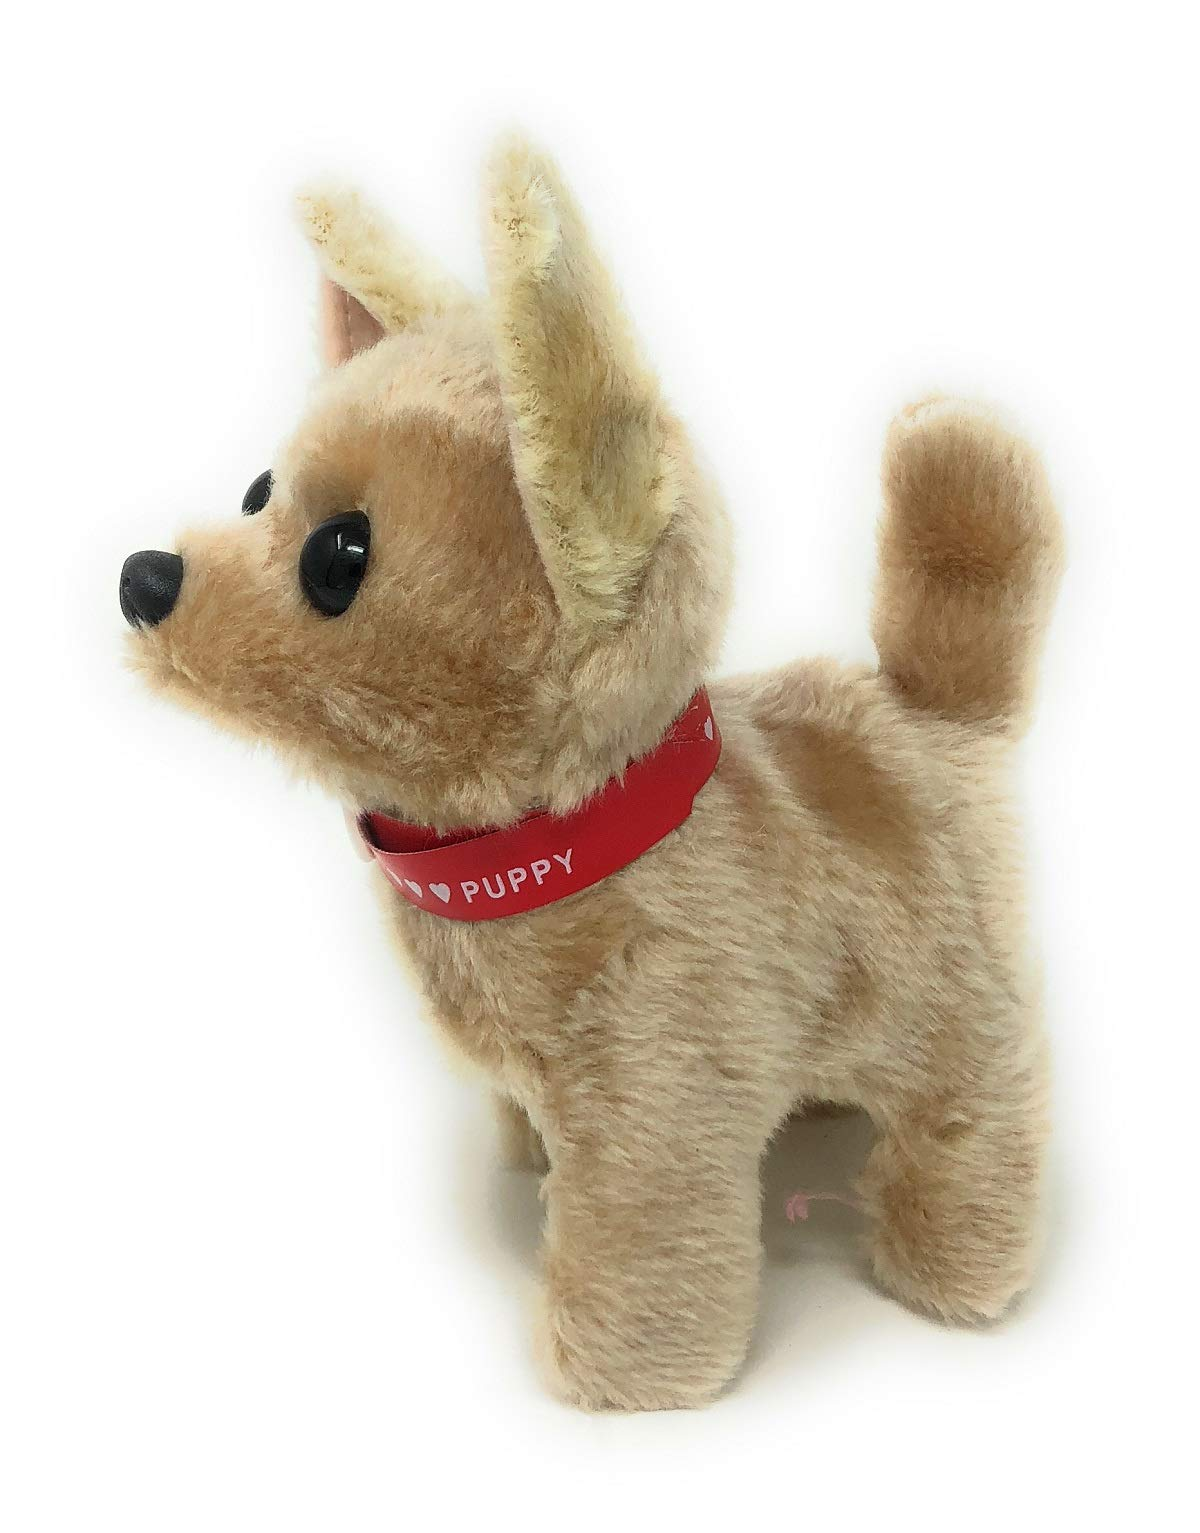 Playee Walking Toy Puppy | Battery Operated Walking, Tail-Wagging and Mechanical Barking Electronic PIush Animal Dog by Playee (Image #2)